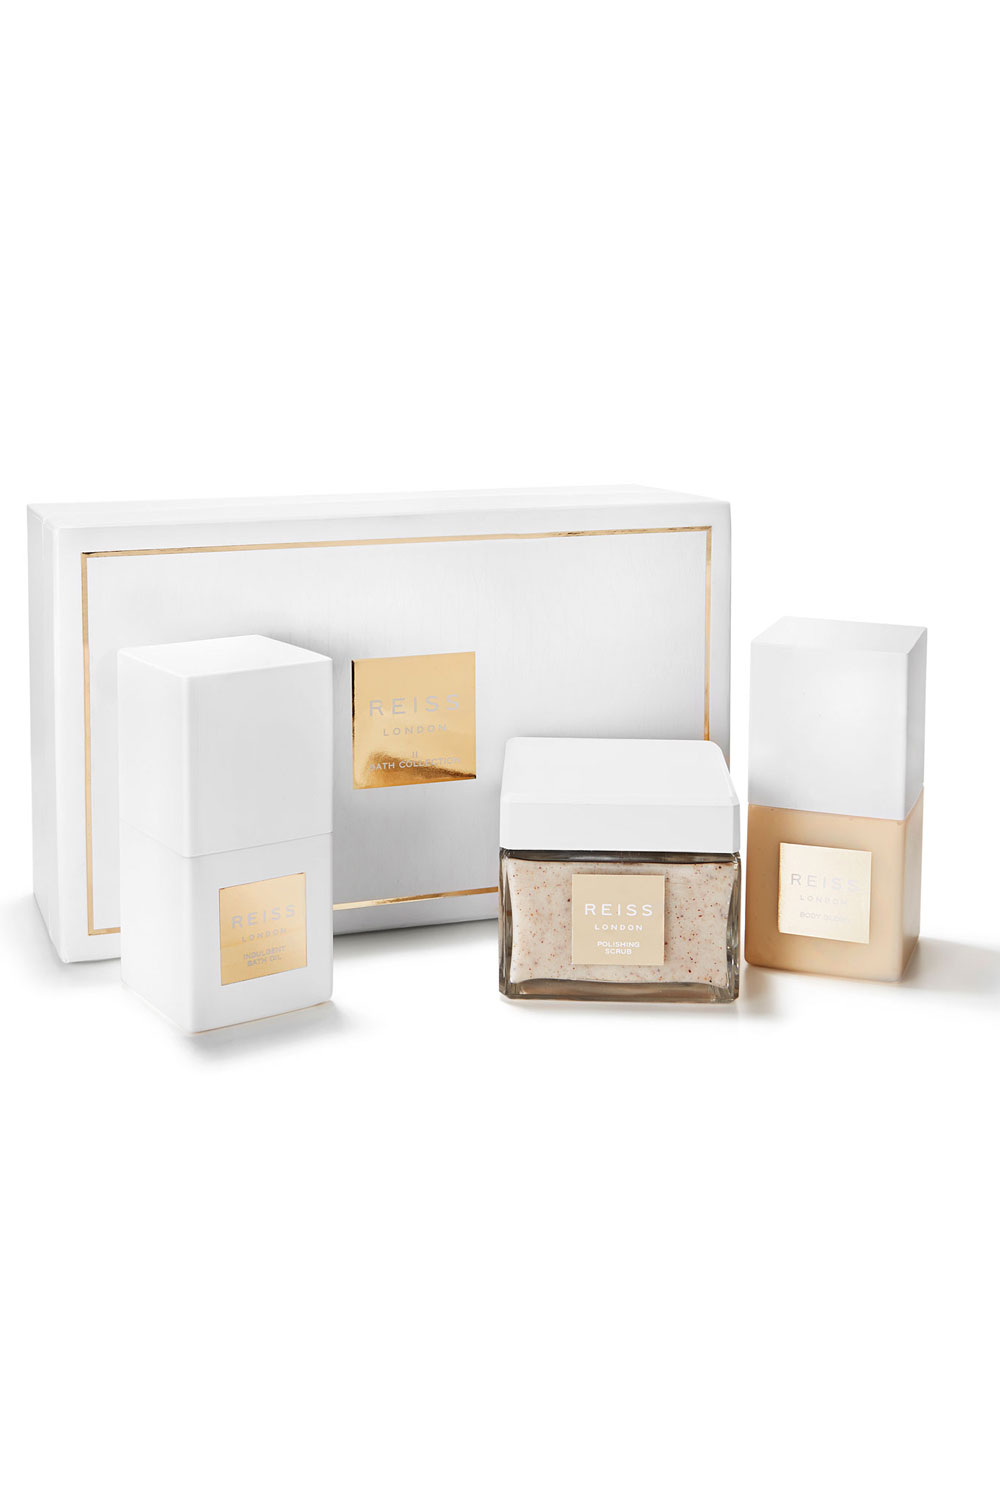 Beauty Gift Sets For Christmas SPA DAY BLISS Reiss II Bath Collection 20